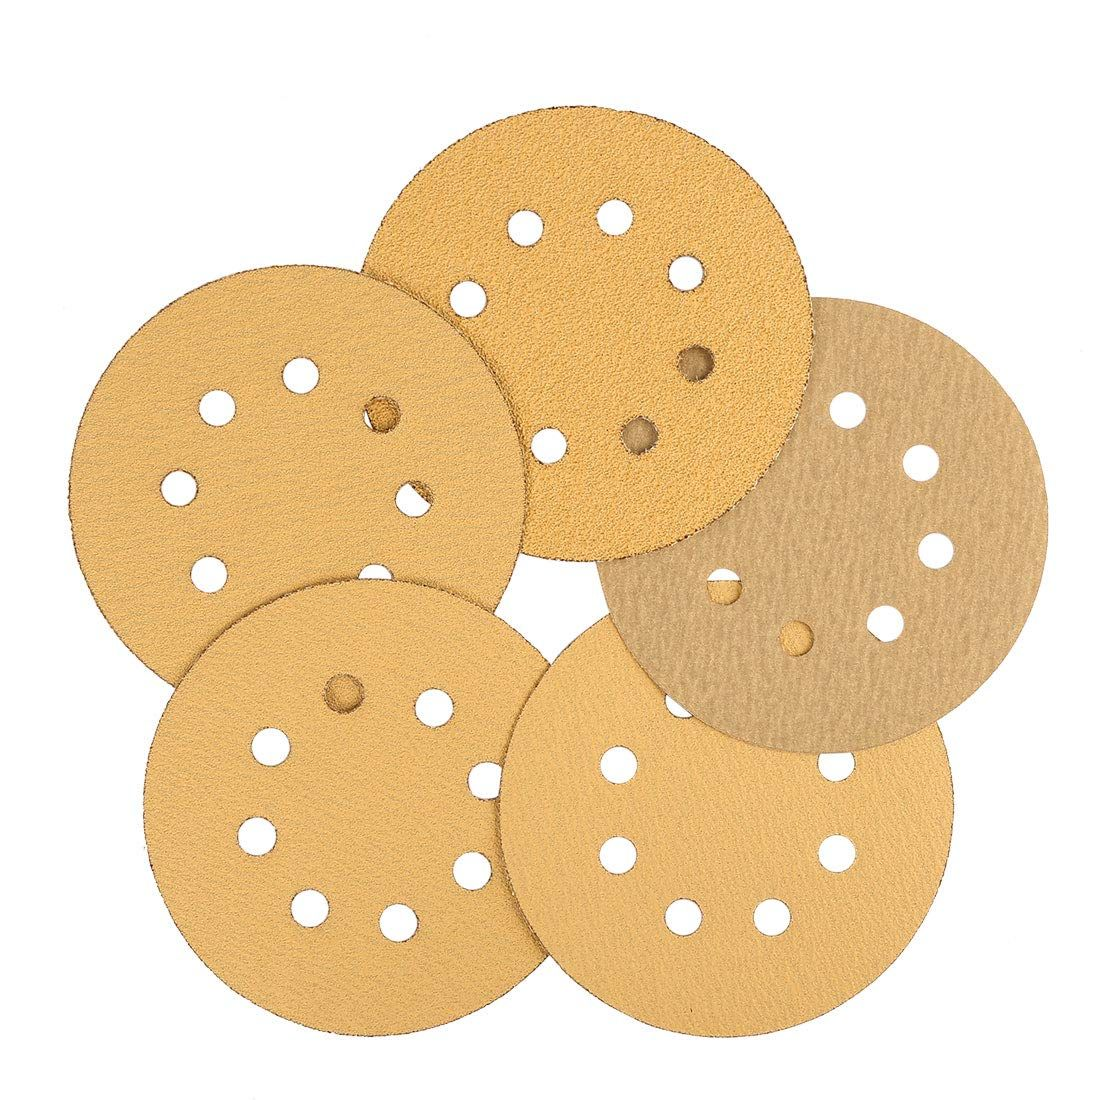 Uxcell 50 Pcs 5 Inch 8 Hole Hook And Loop Sanding Discs Sander Pads 60 80 100 120 240 Assorted Grits Sandpaper For More In In 2020 Abrasive Wheels Sandpaper Assorted